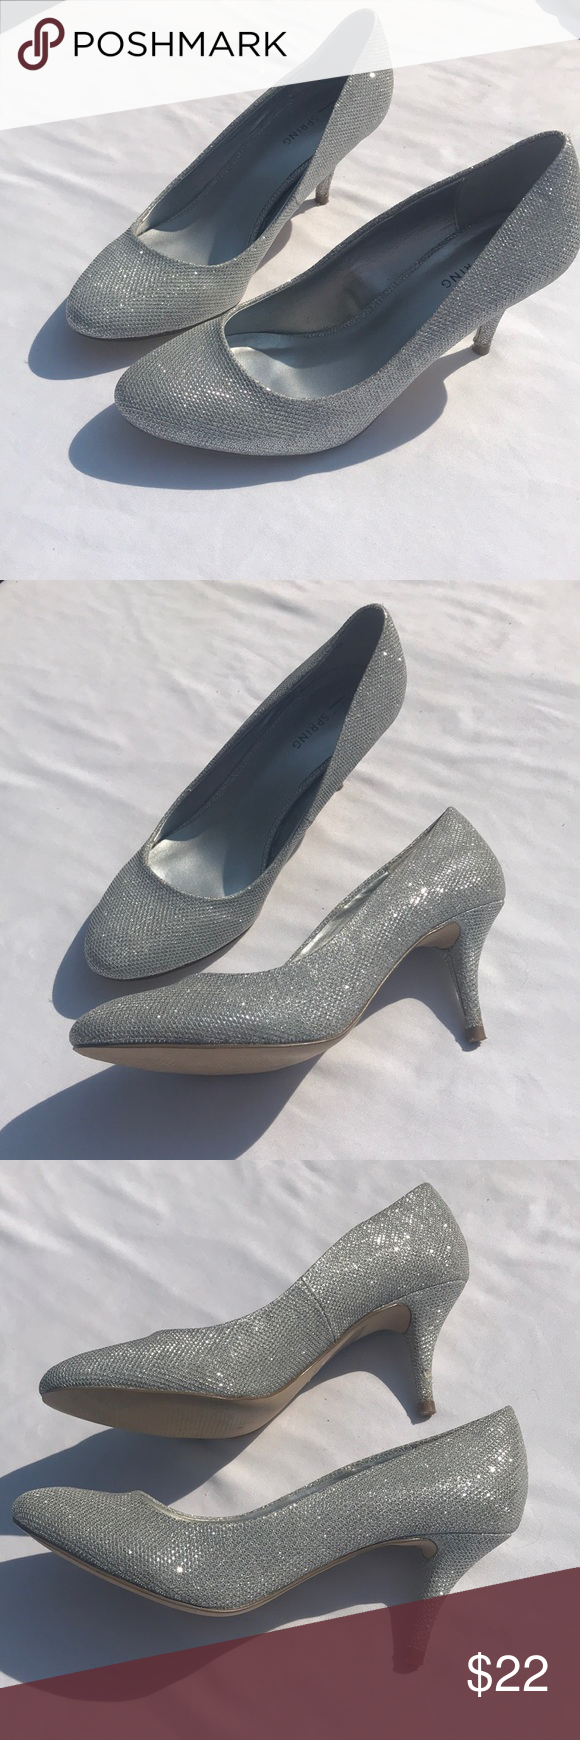 04a676aaca986 Call it Spring Heel 8 Sparkle Silver Gray Close Thank you for your interest  in this listing! This is a pair of women s shoes Brand  Call it Spring  Size  8 ...